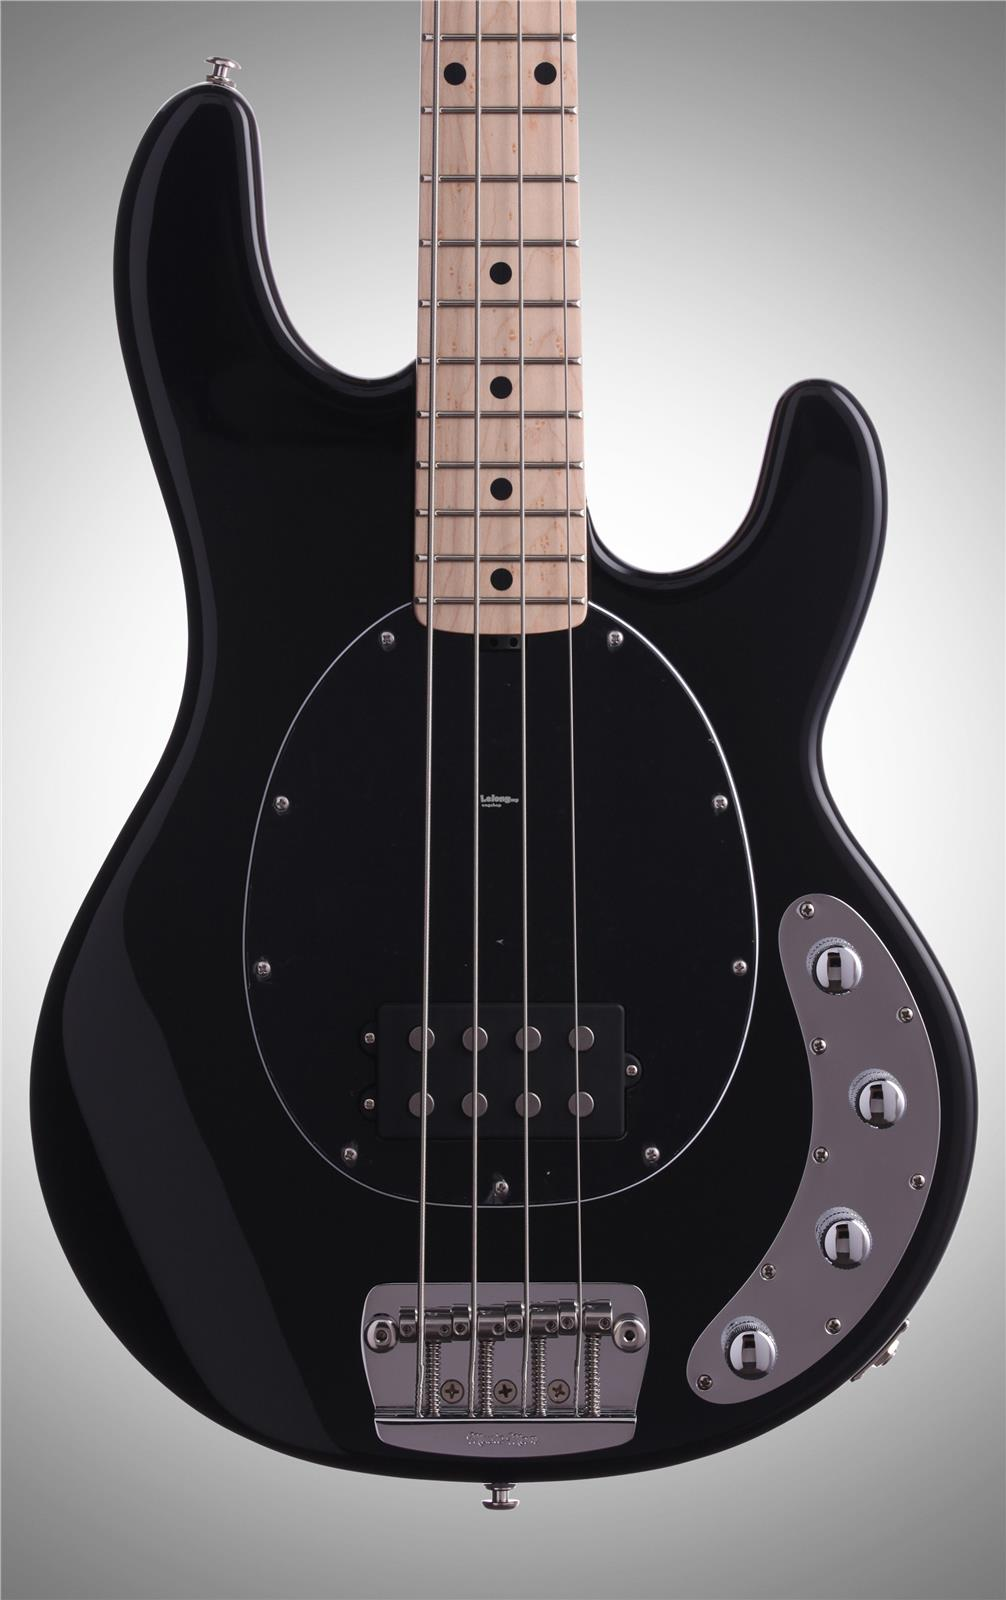 musicman stingray 4 classic bass gui end 4 30 2017 1 14 pm. Black Bedroom Furniture Sets. Home Design Ideas